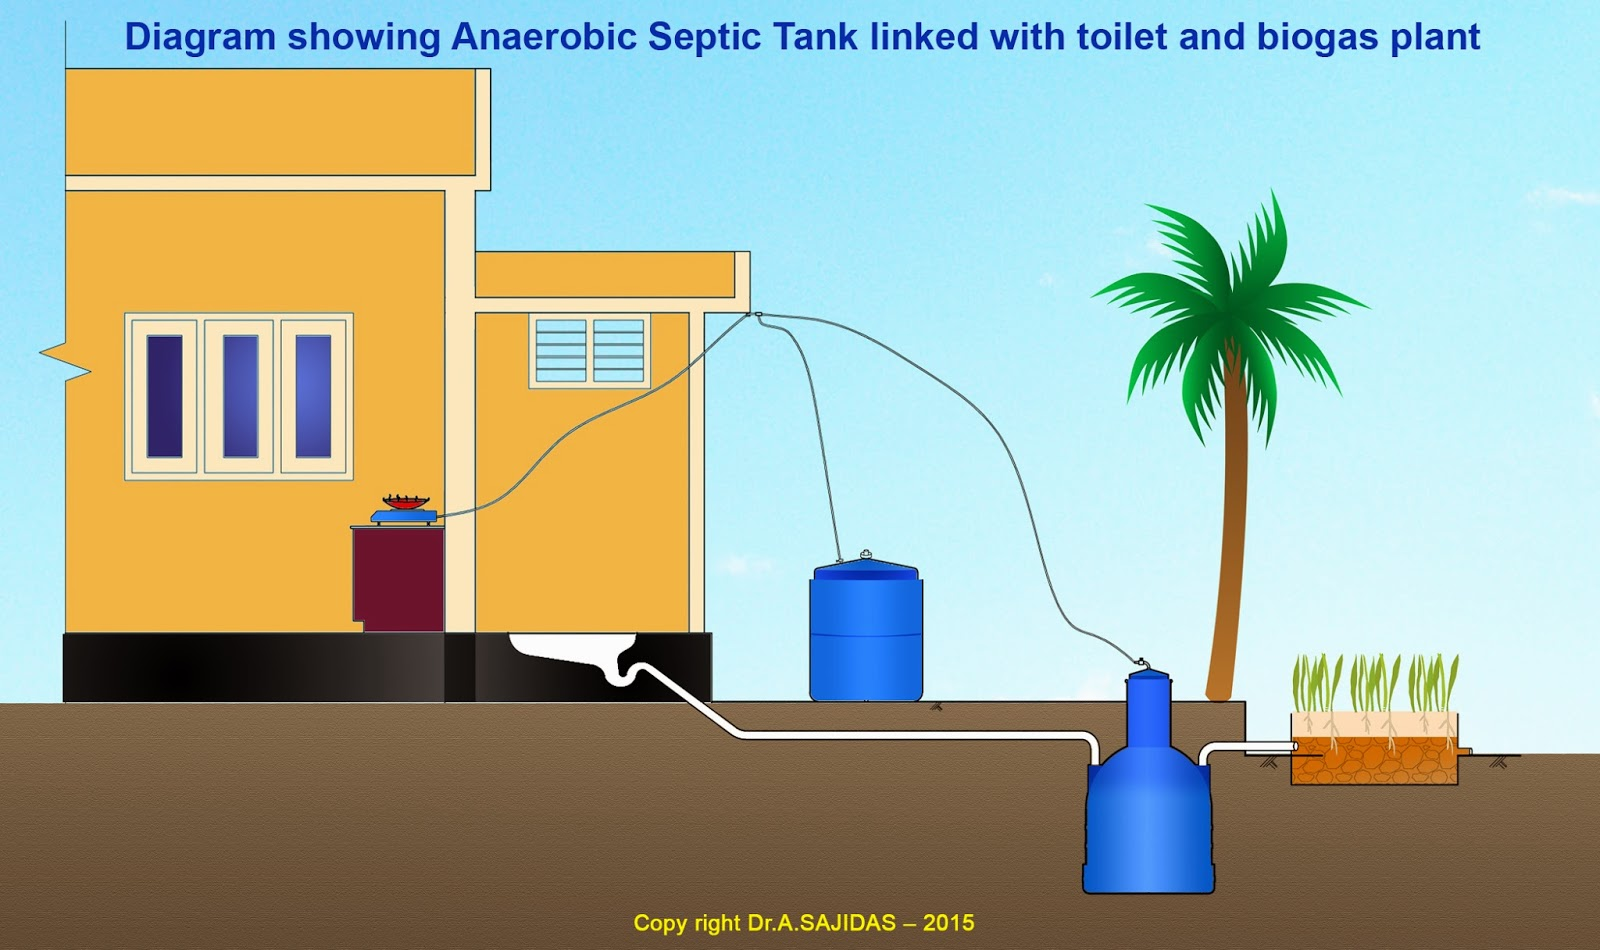 Anaerobic Septic tanks for better sanitation and green energy